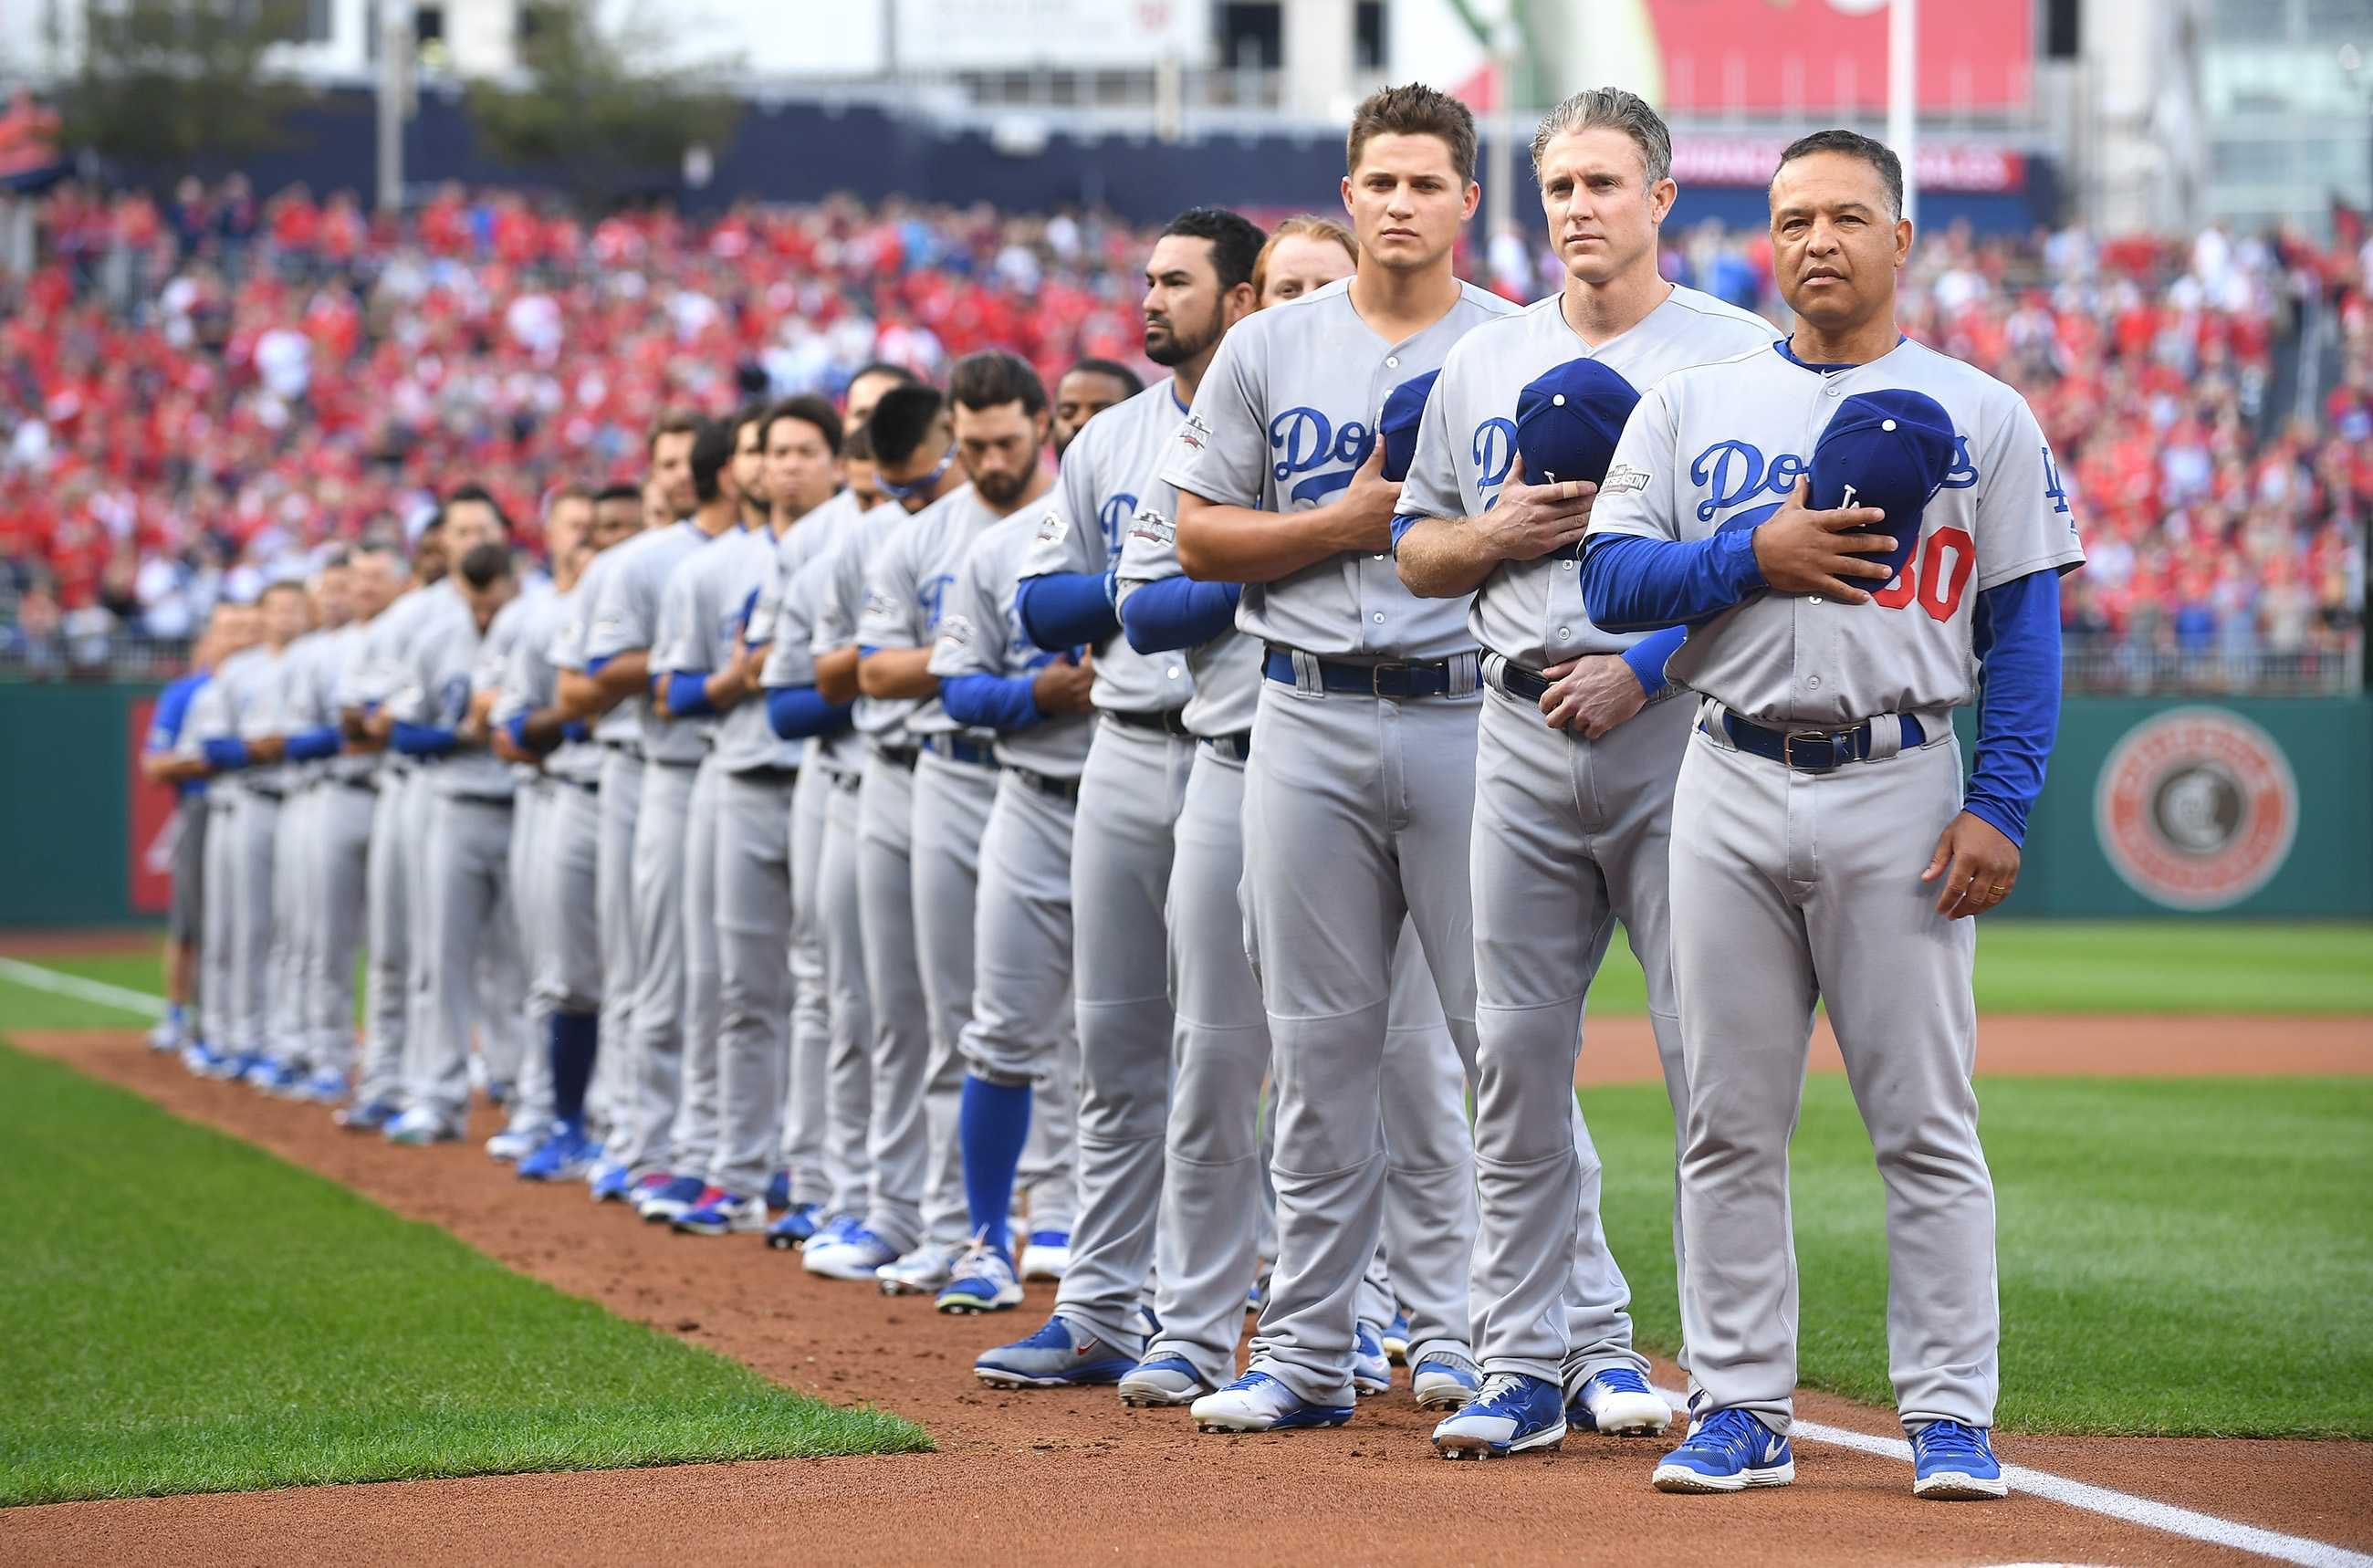 LA Dodgers stand for the pledge of allegiance